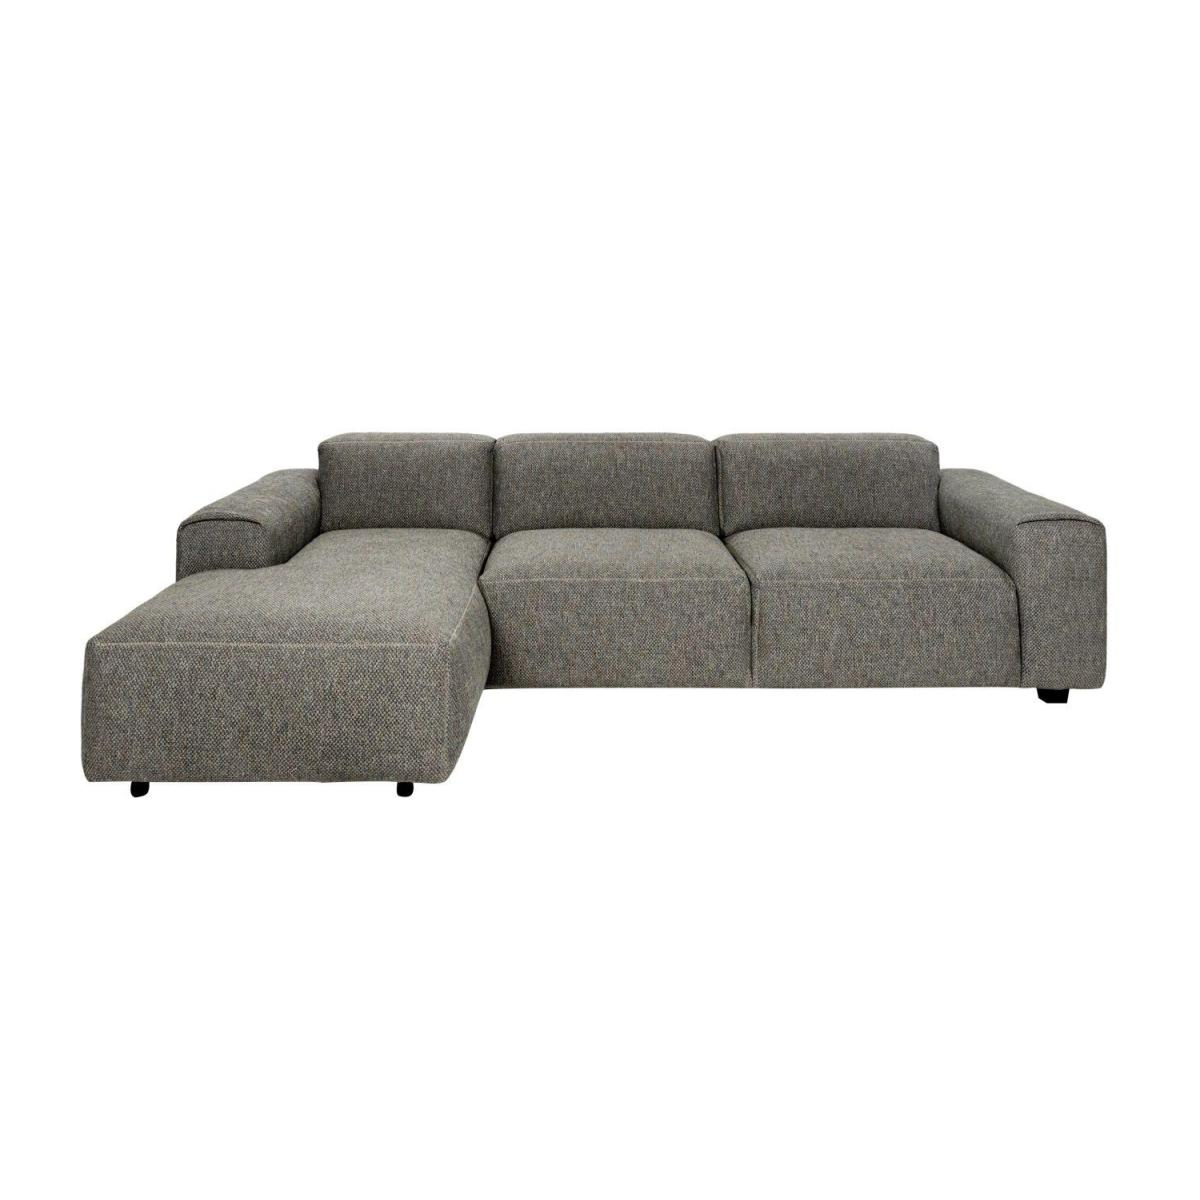 3-Sitzer Sofa mit Chaiselongue links aus Stoff Bellagio night black n°3